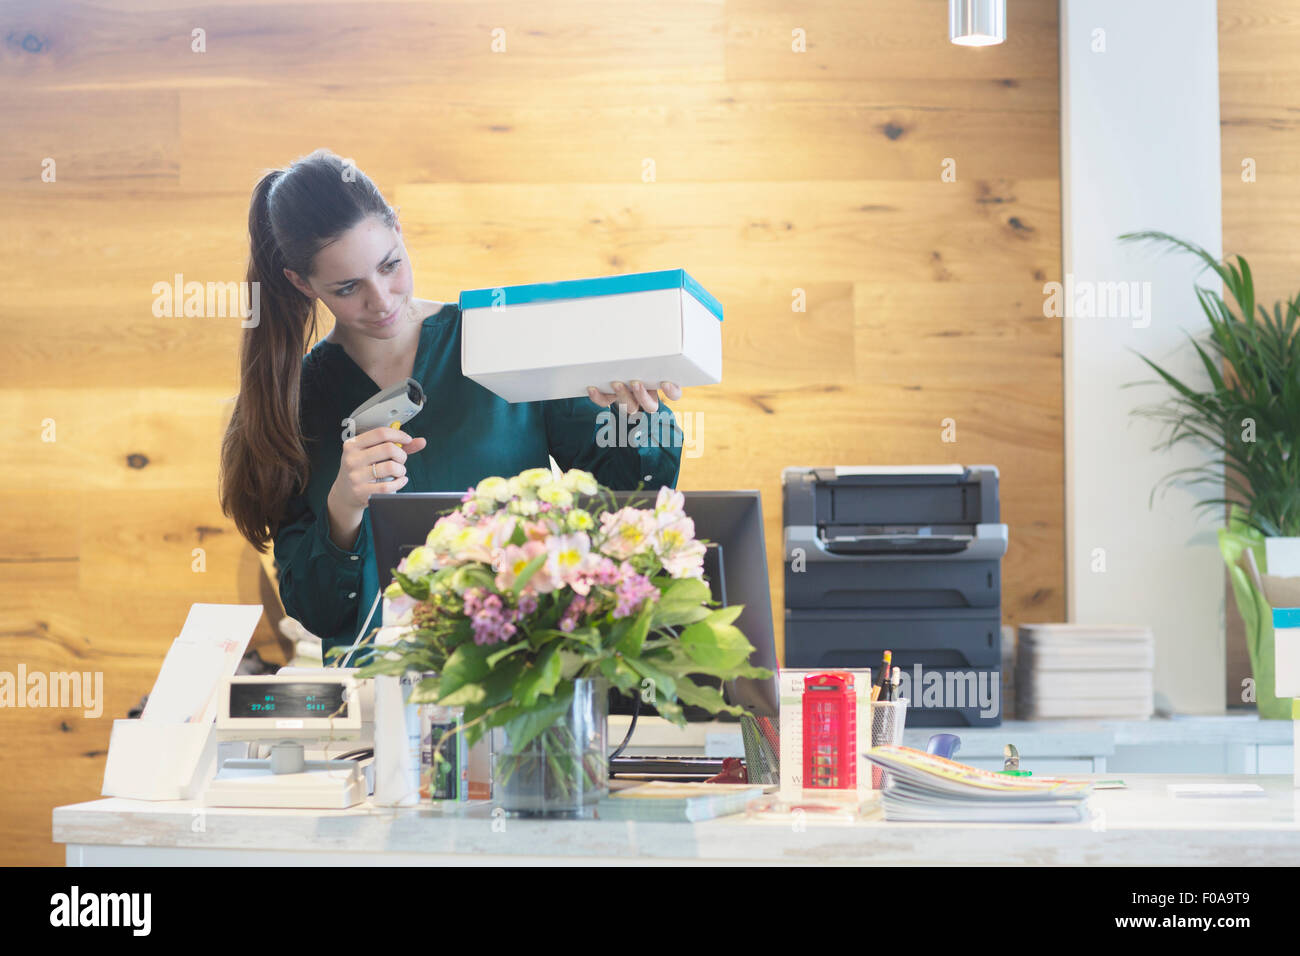 Female sales assistant using barcode reader on shoe box in shoe shop - Stock Image